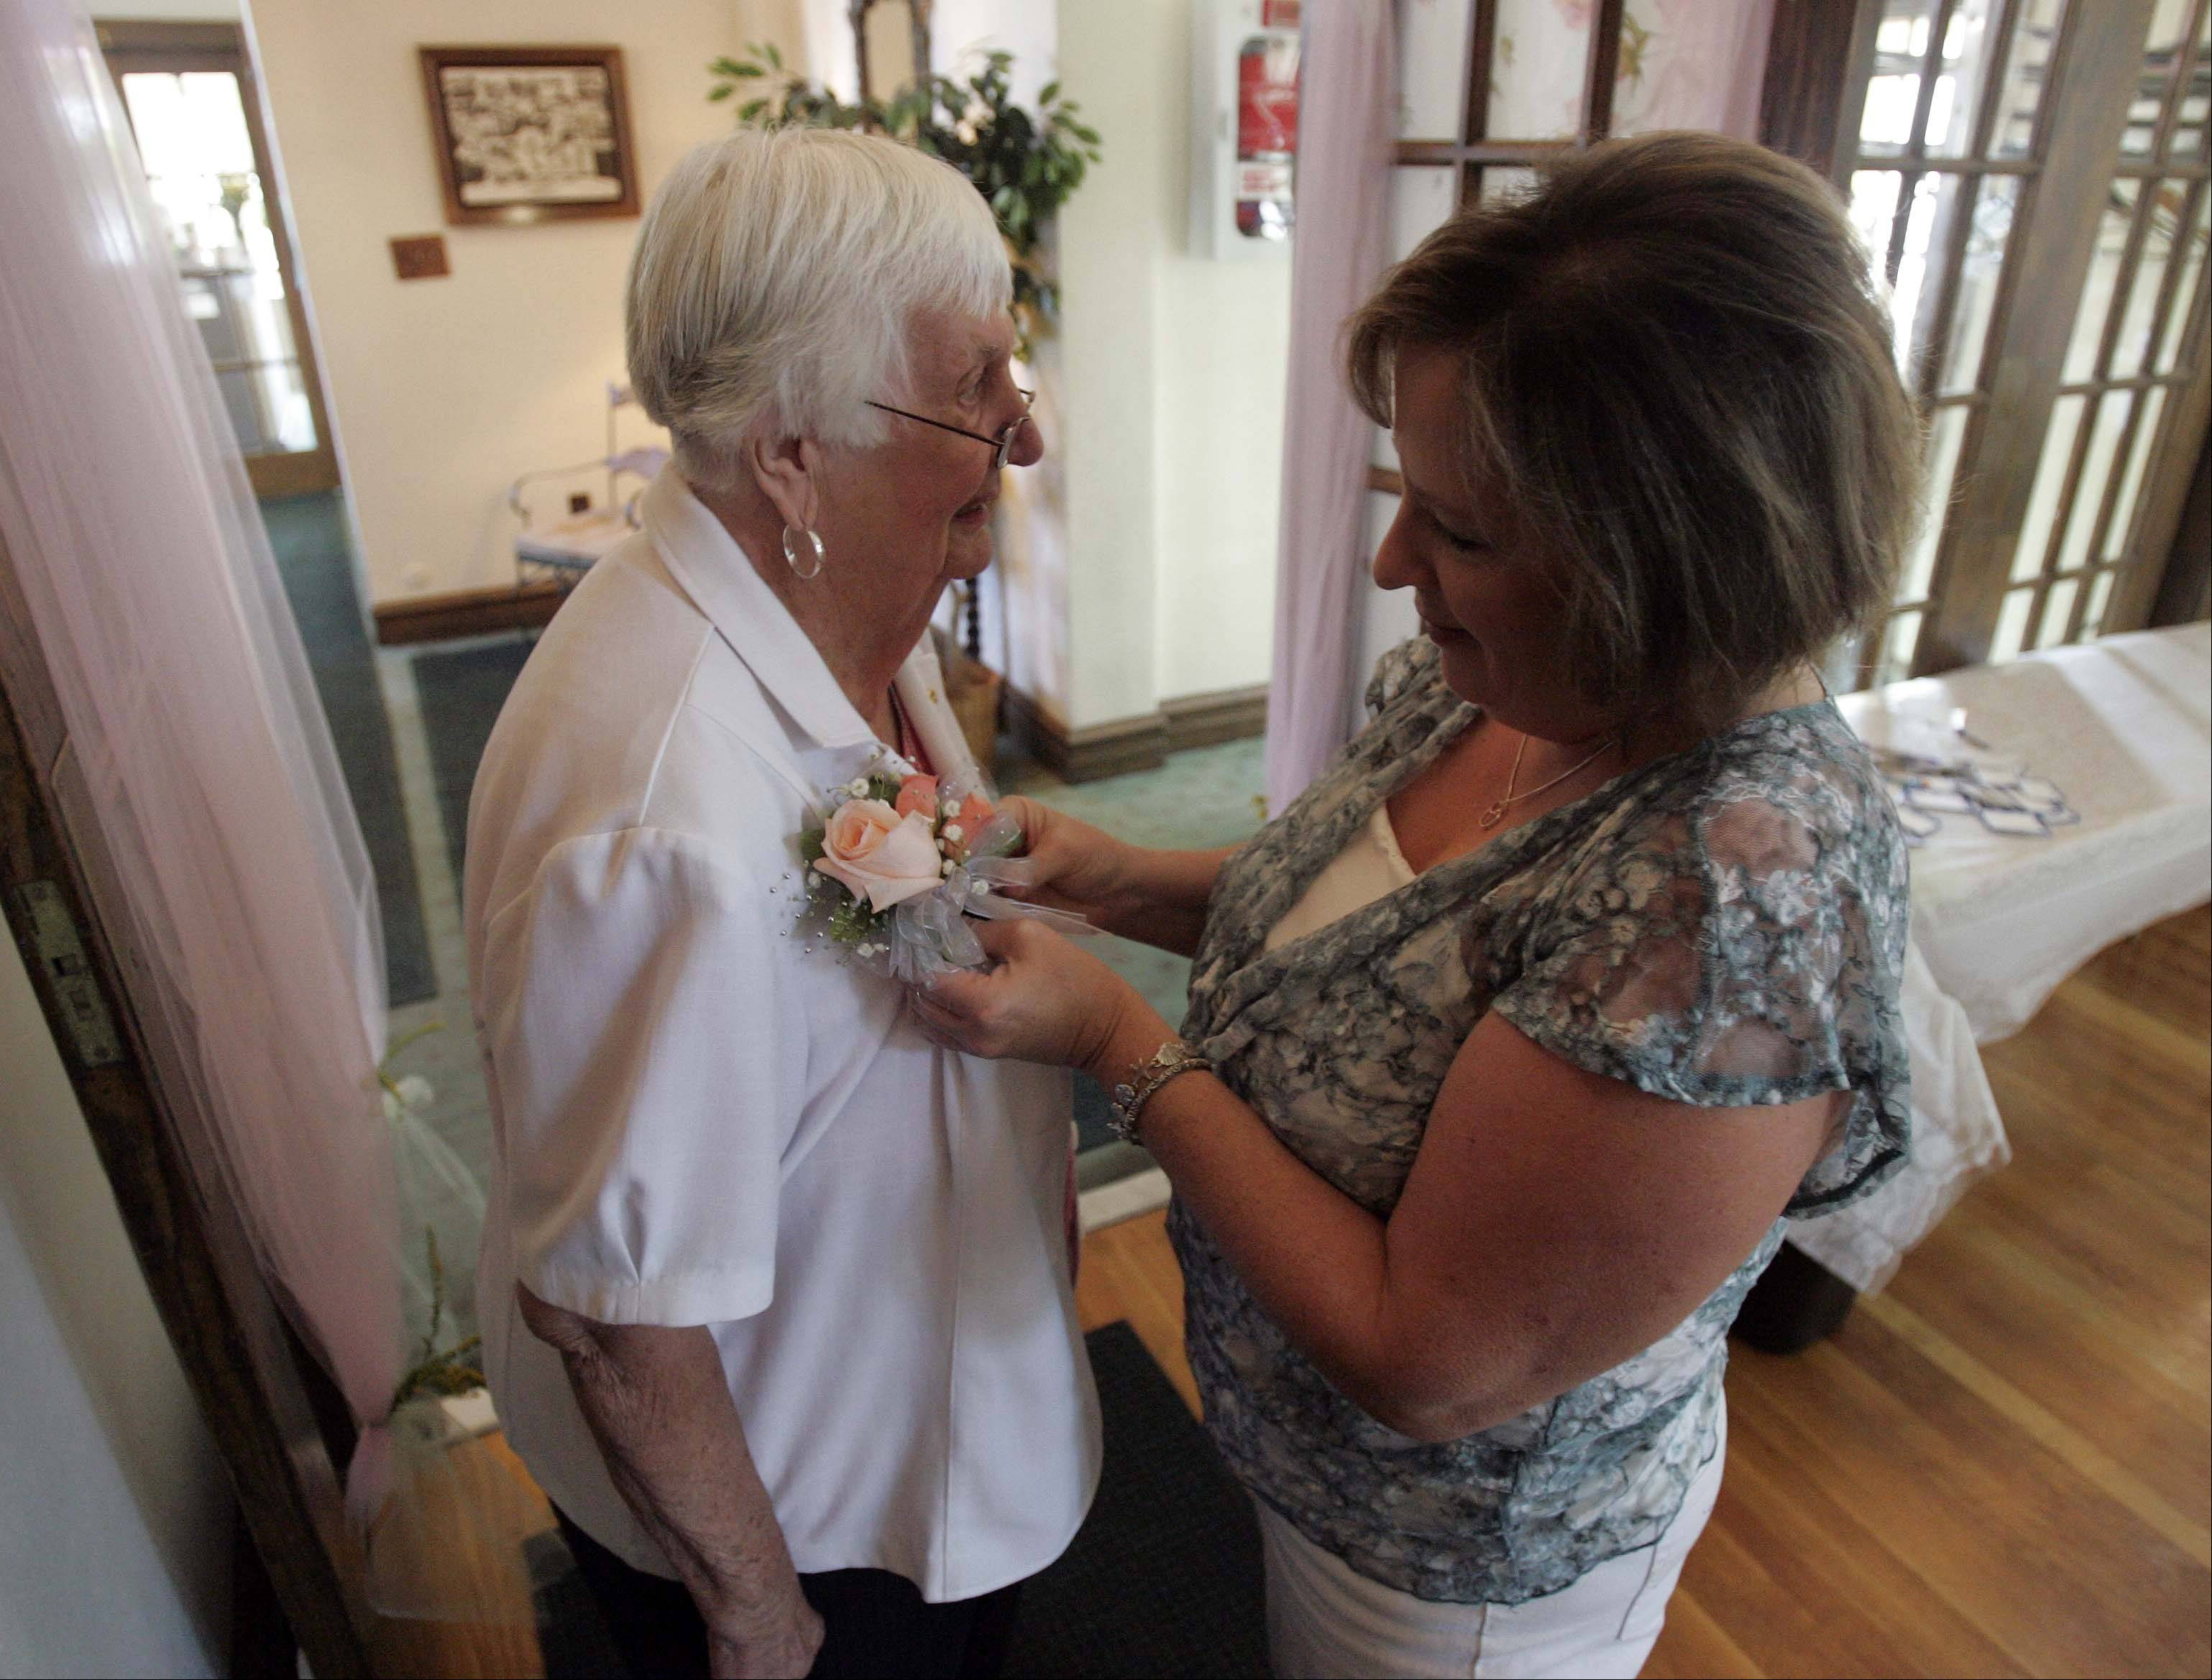 Co-worker Candy Boulay pins a corsage on Carol Glemza, 87, who is retiring after working 69 years for the St. Charles Park District.